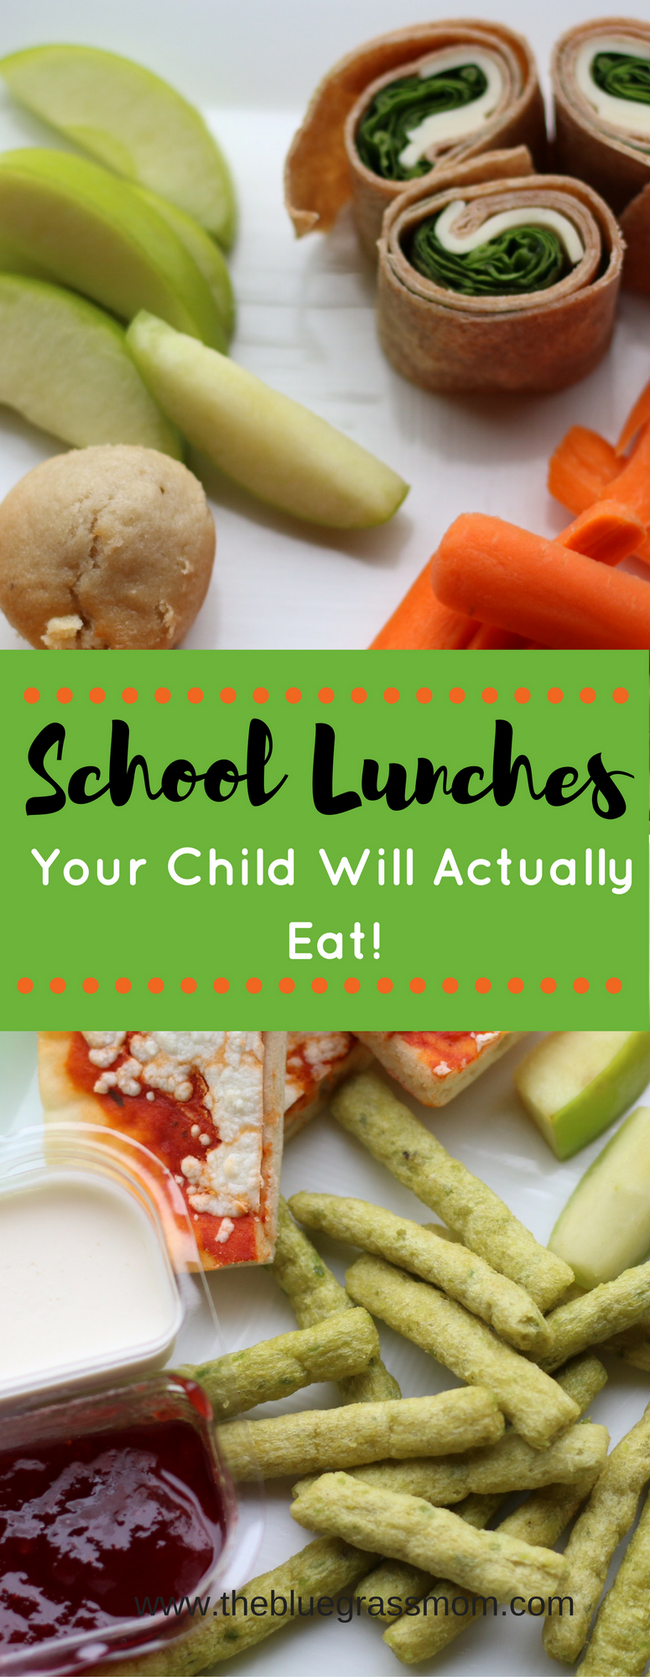 School Lunches That Your Kids Will Actually Want to Eat